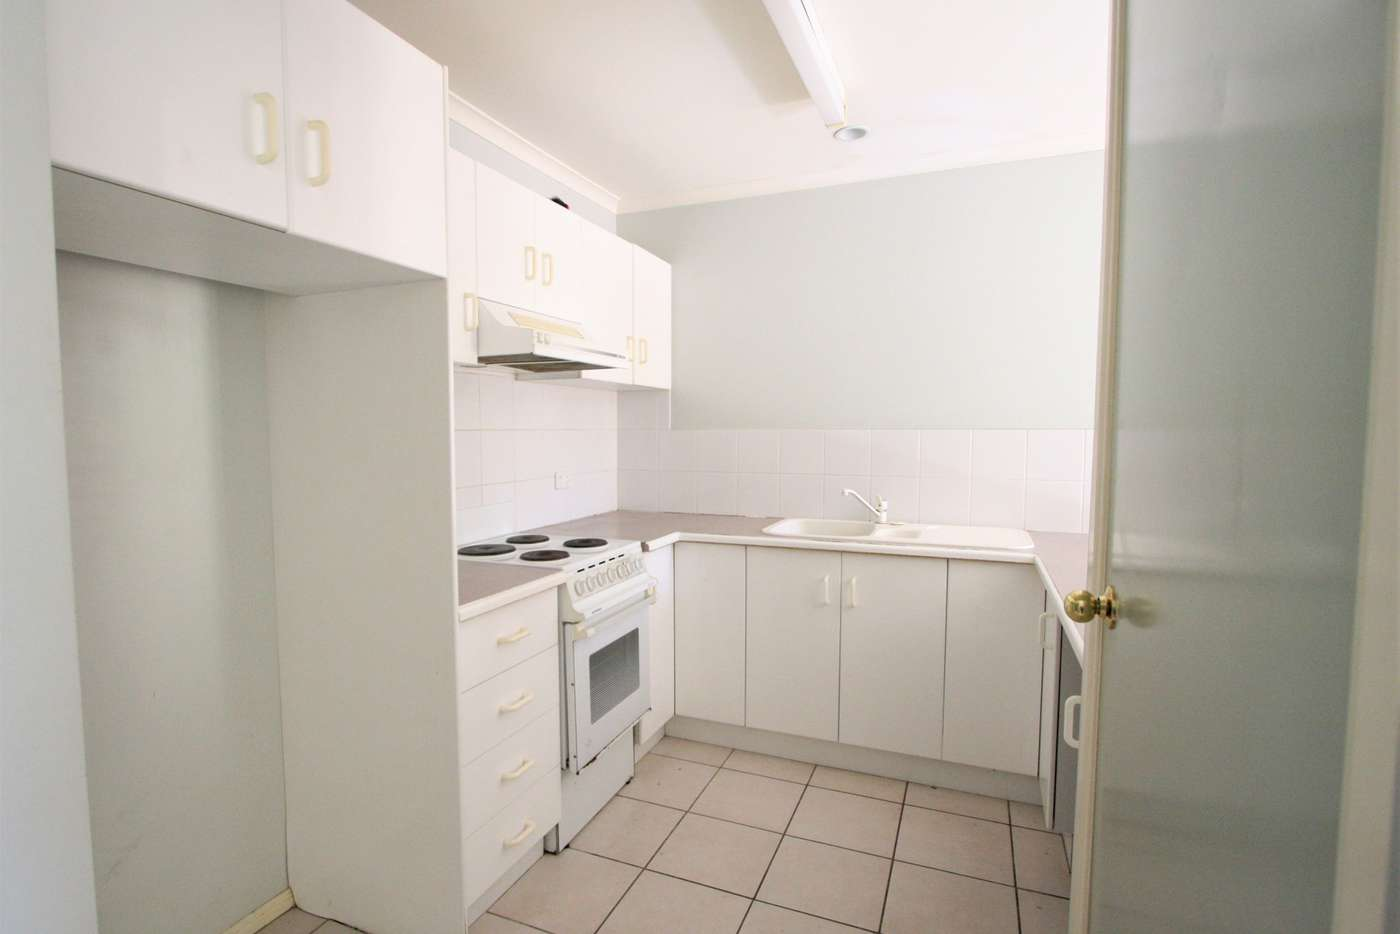 Seventh view of Homely unit listing, 2/60 Rialto Street, Coorparoo QLD 4151